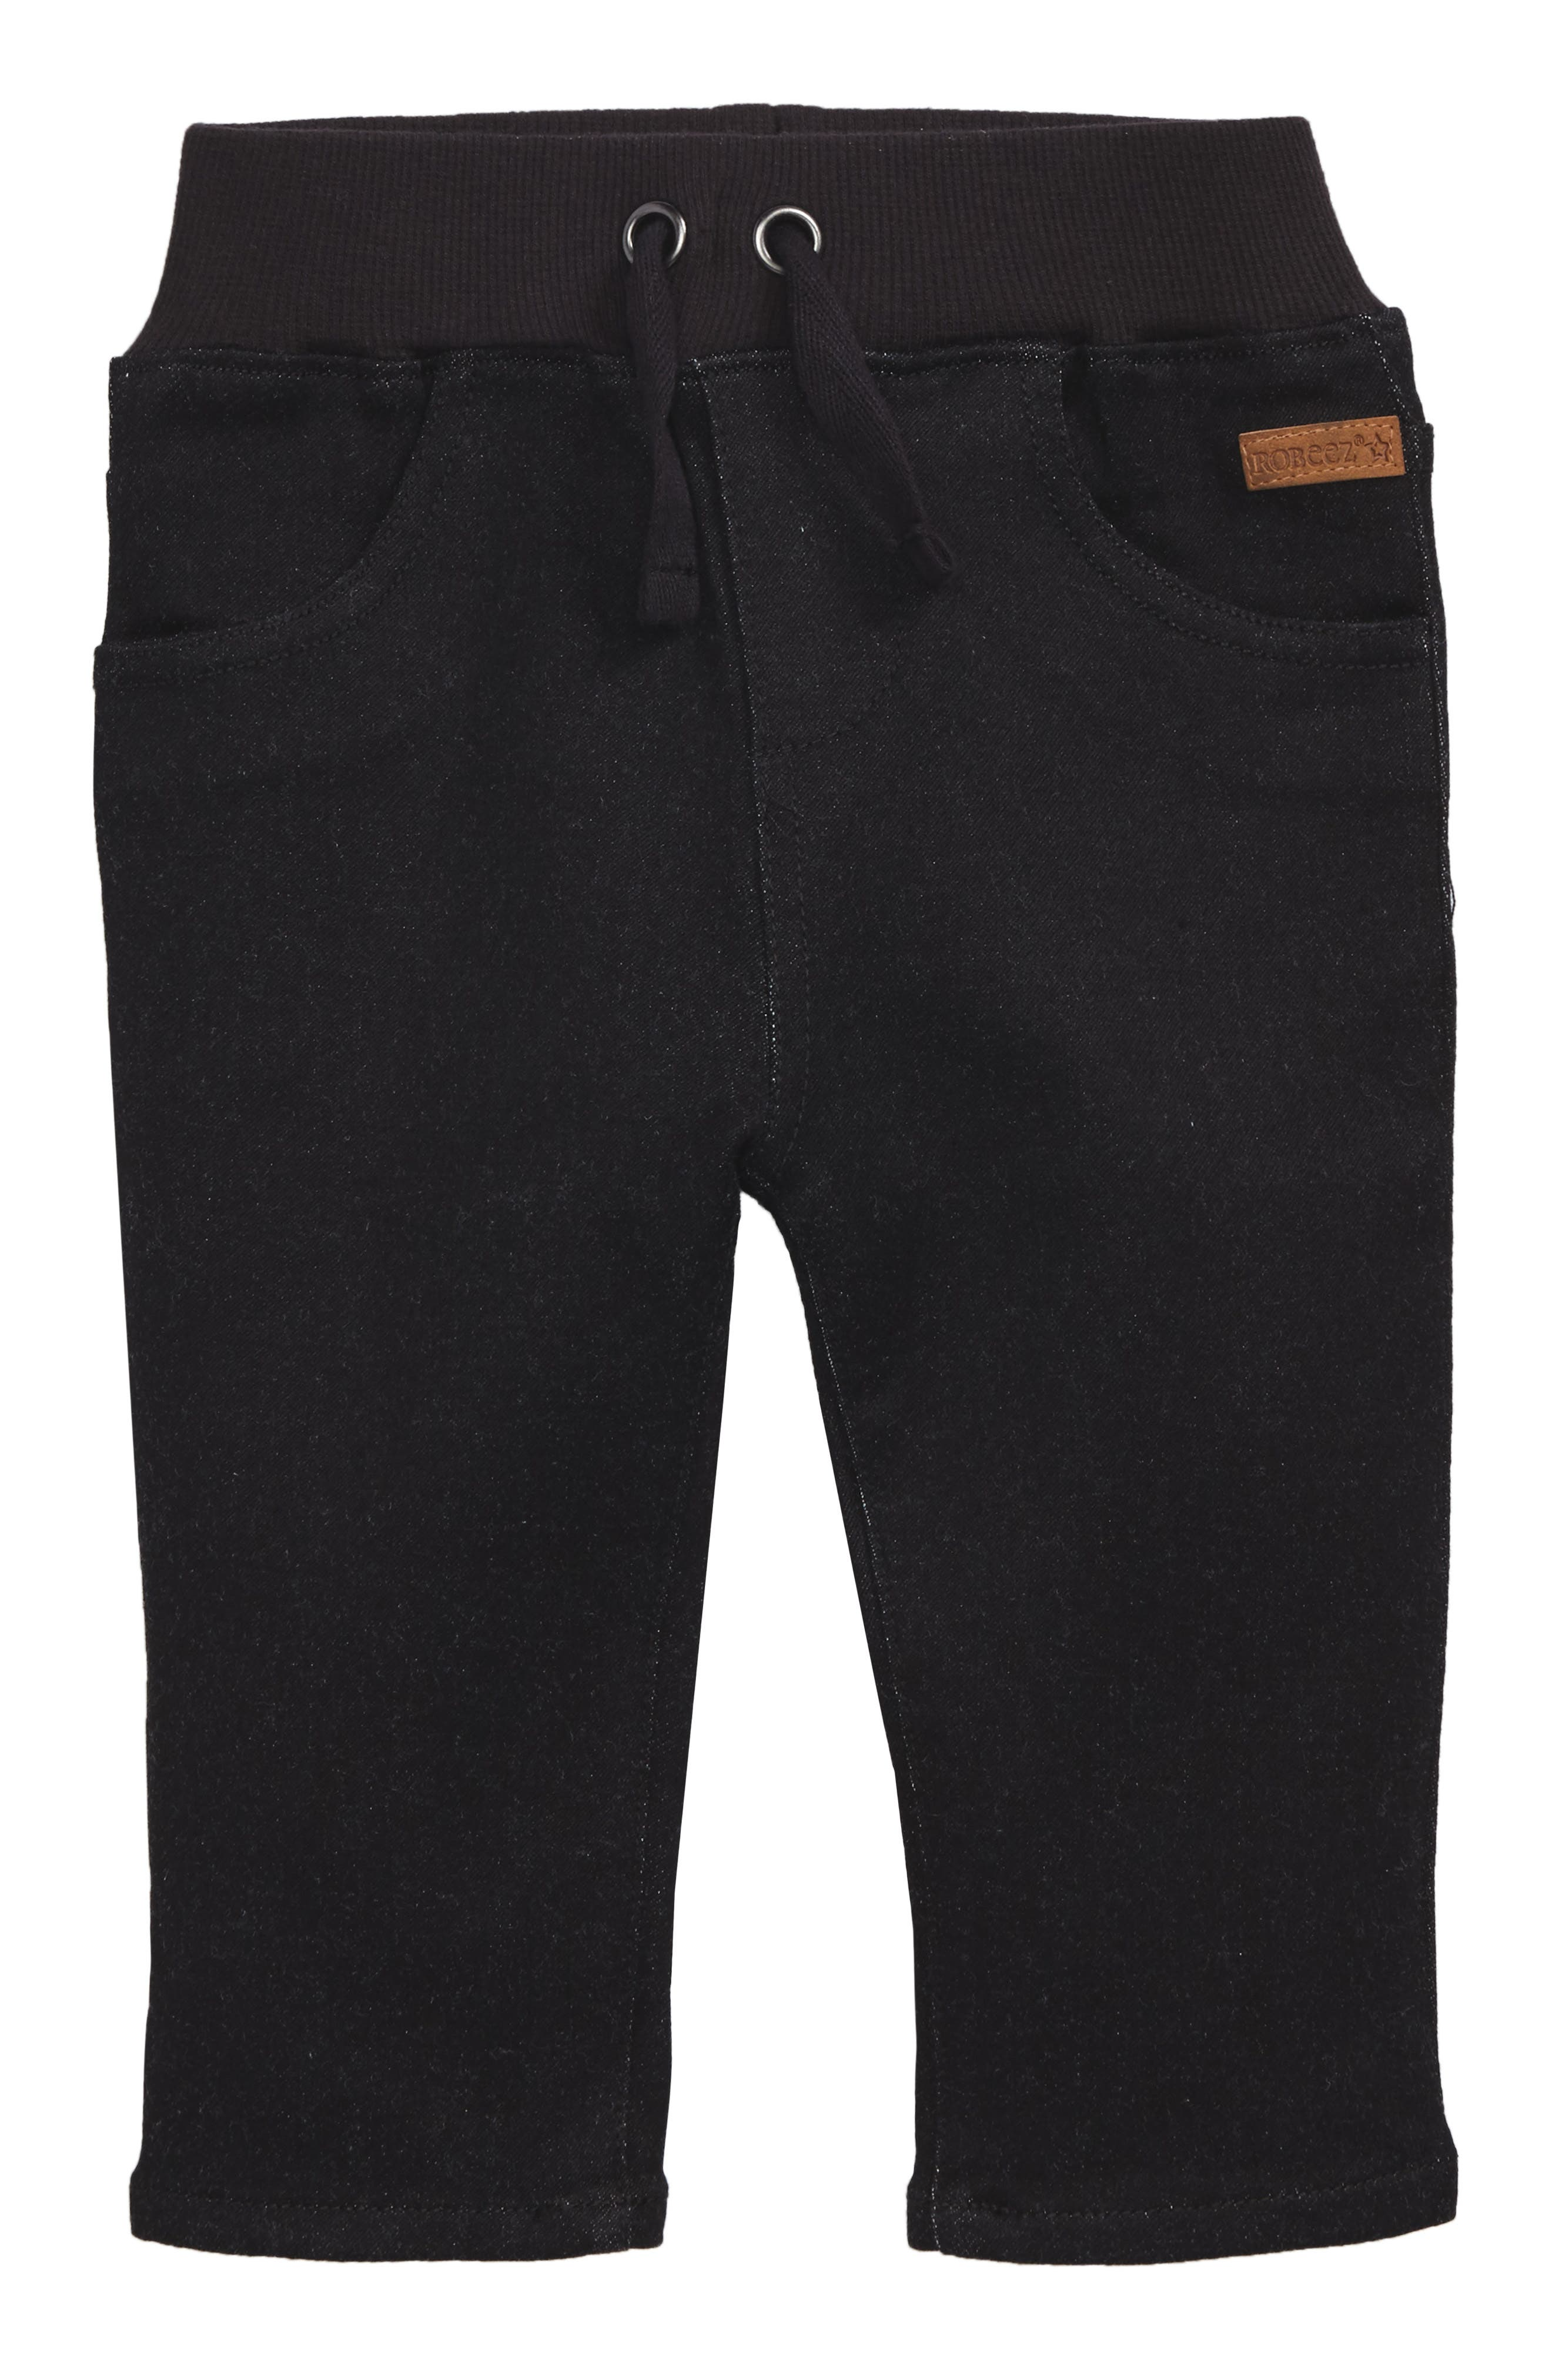 Soft Jeans,                             Main thumbnail 1, color,                             Black